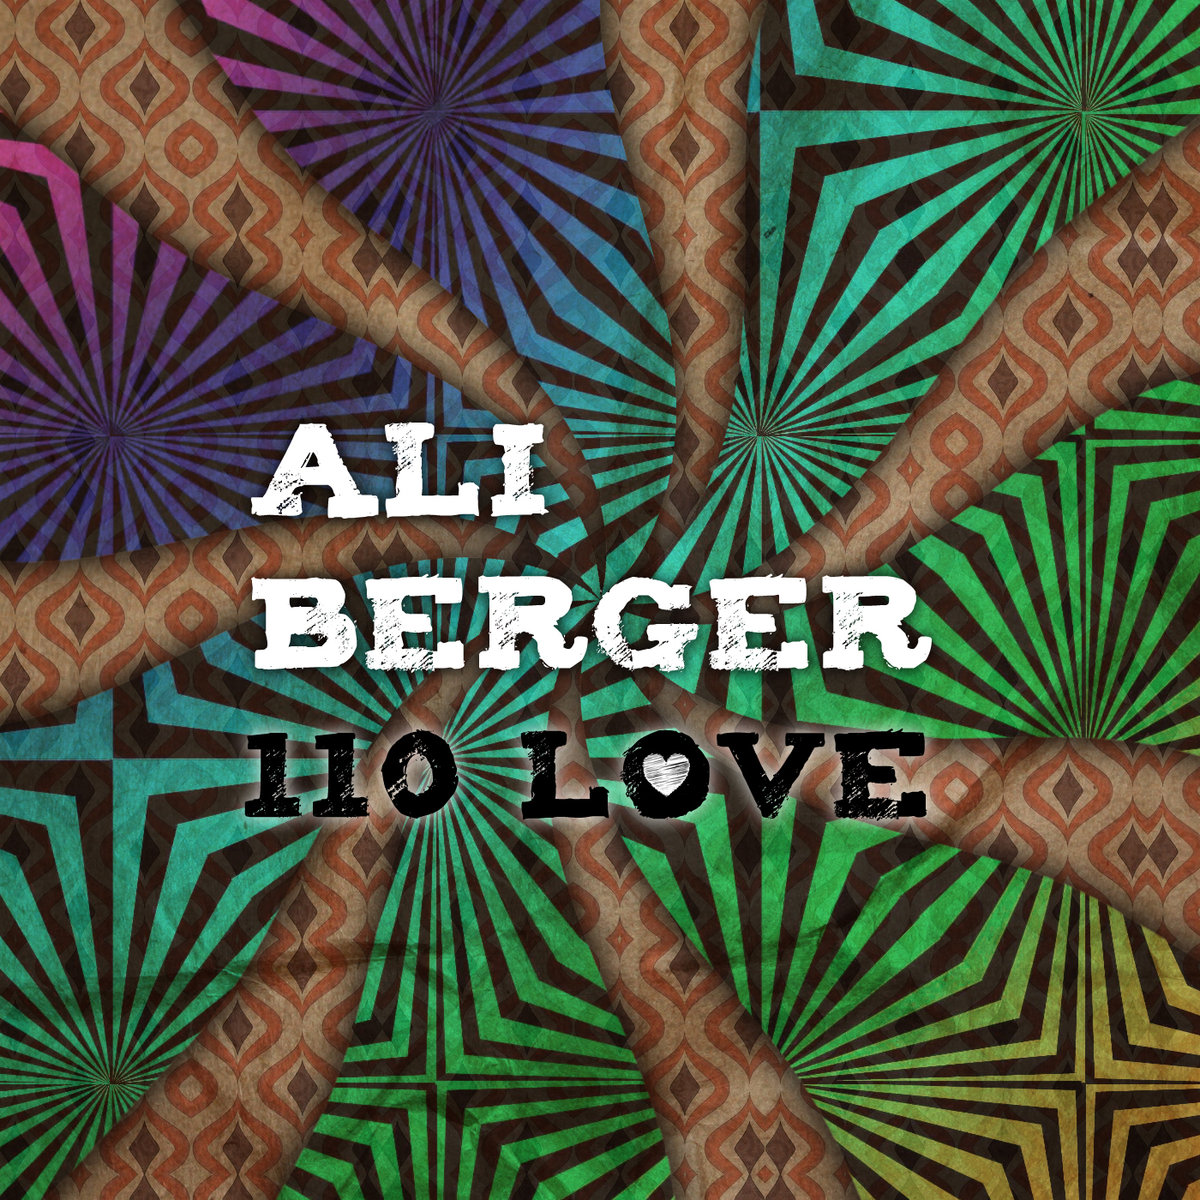 Ali Berger - Gloves On (Bonus Beat) @ '110 Love' album (bass, electronic)